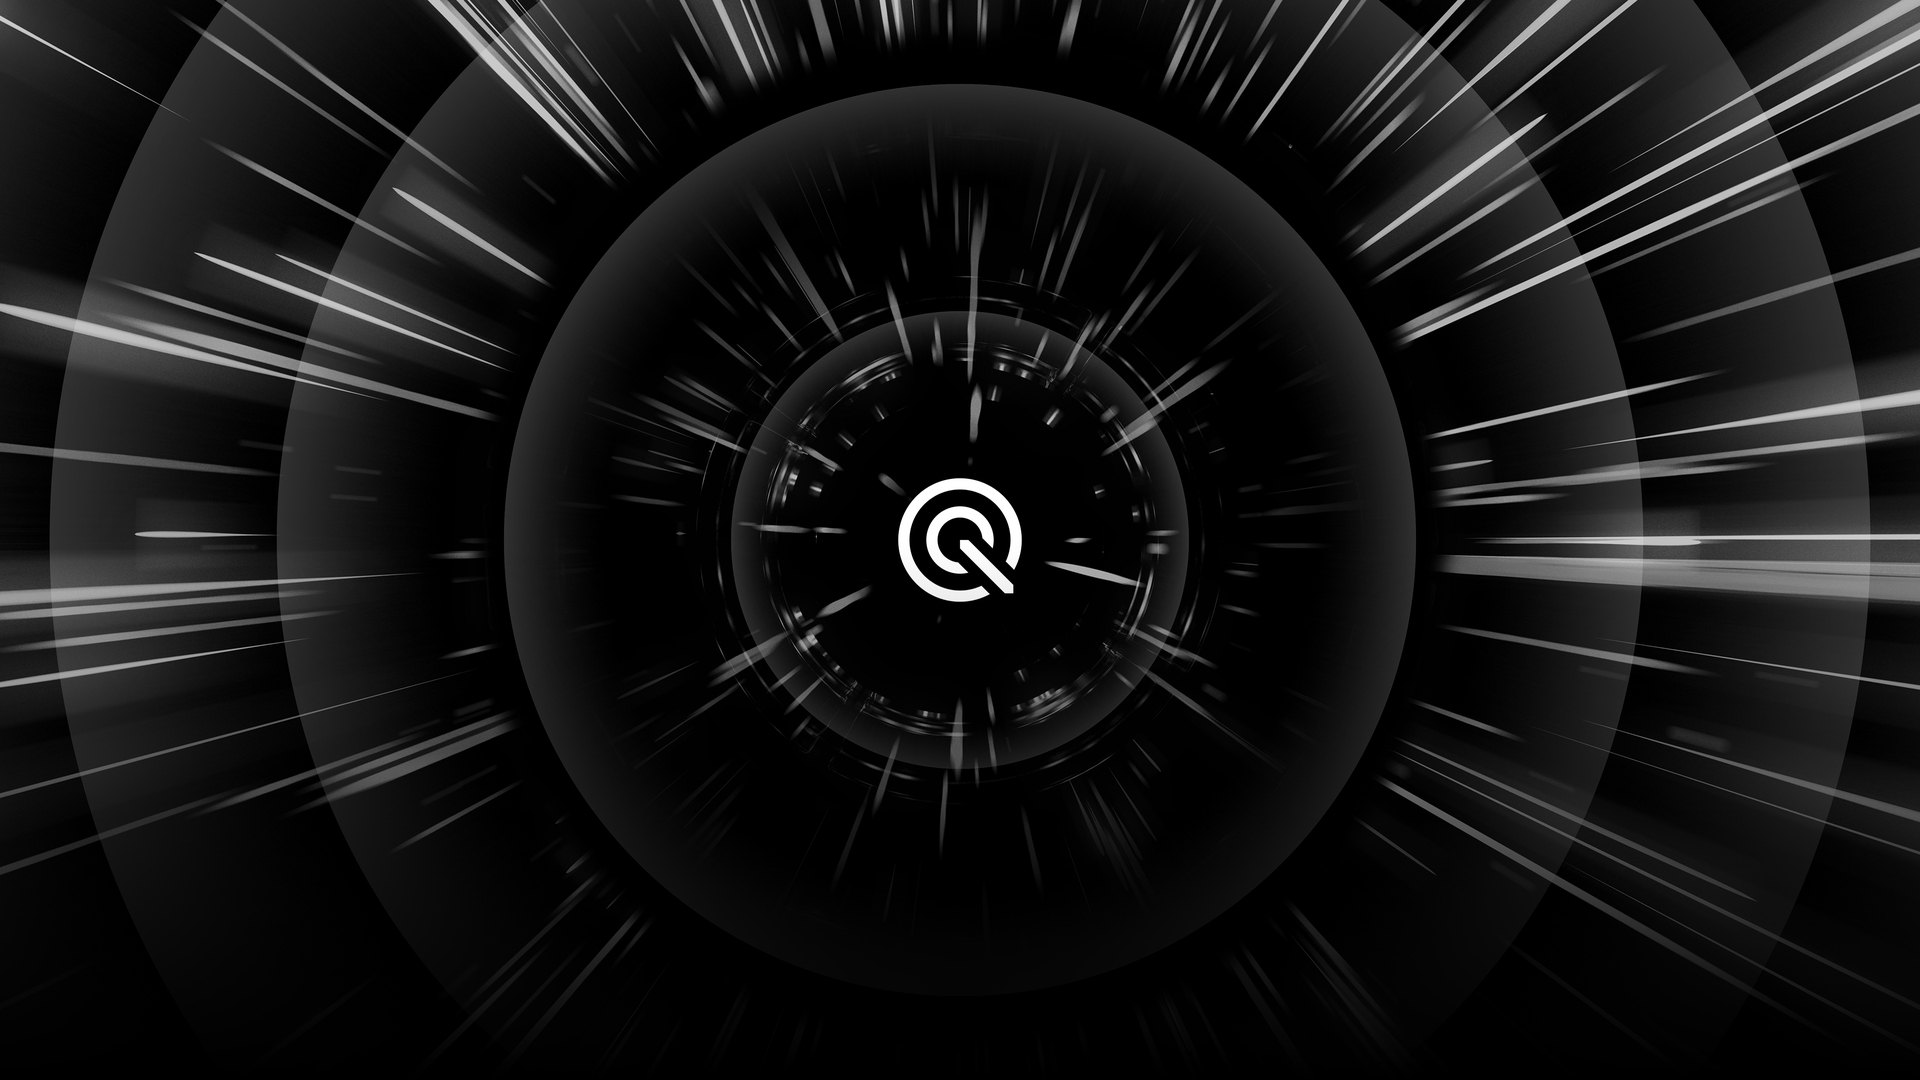 A warp-speed tunnel showing the quantum 2.0 dual wireless logo in the center.